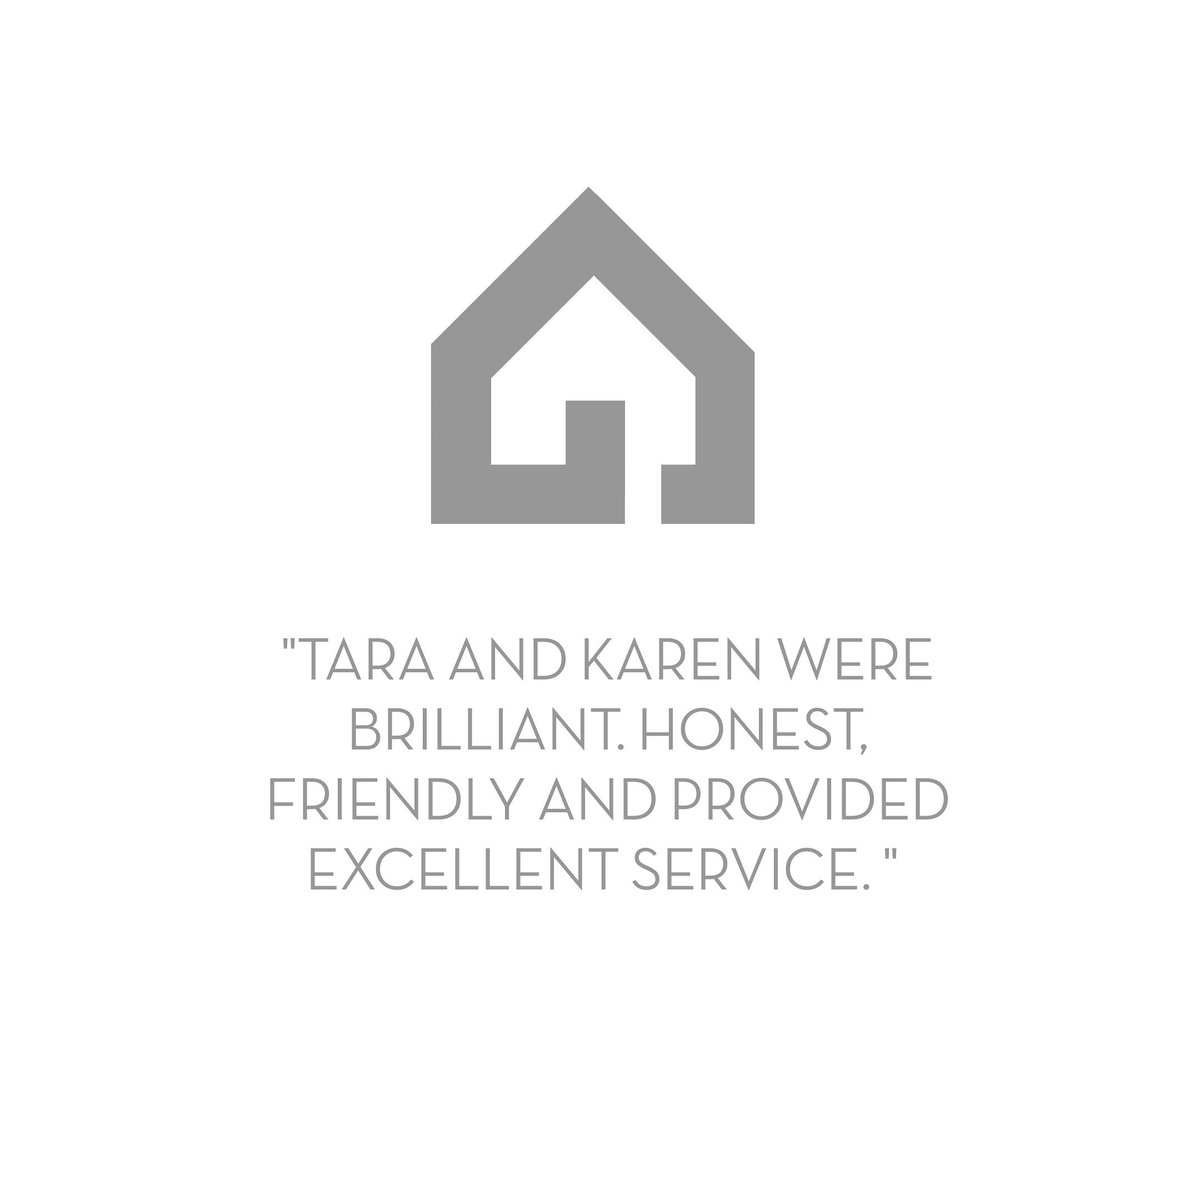 A fantastic review. Thank you!  #happyvendor #happycustomer #customerservice #estateagent https://t.co/AHnp7ya34N